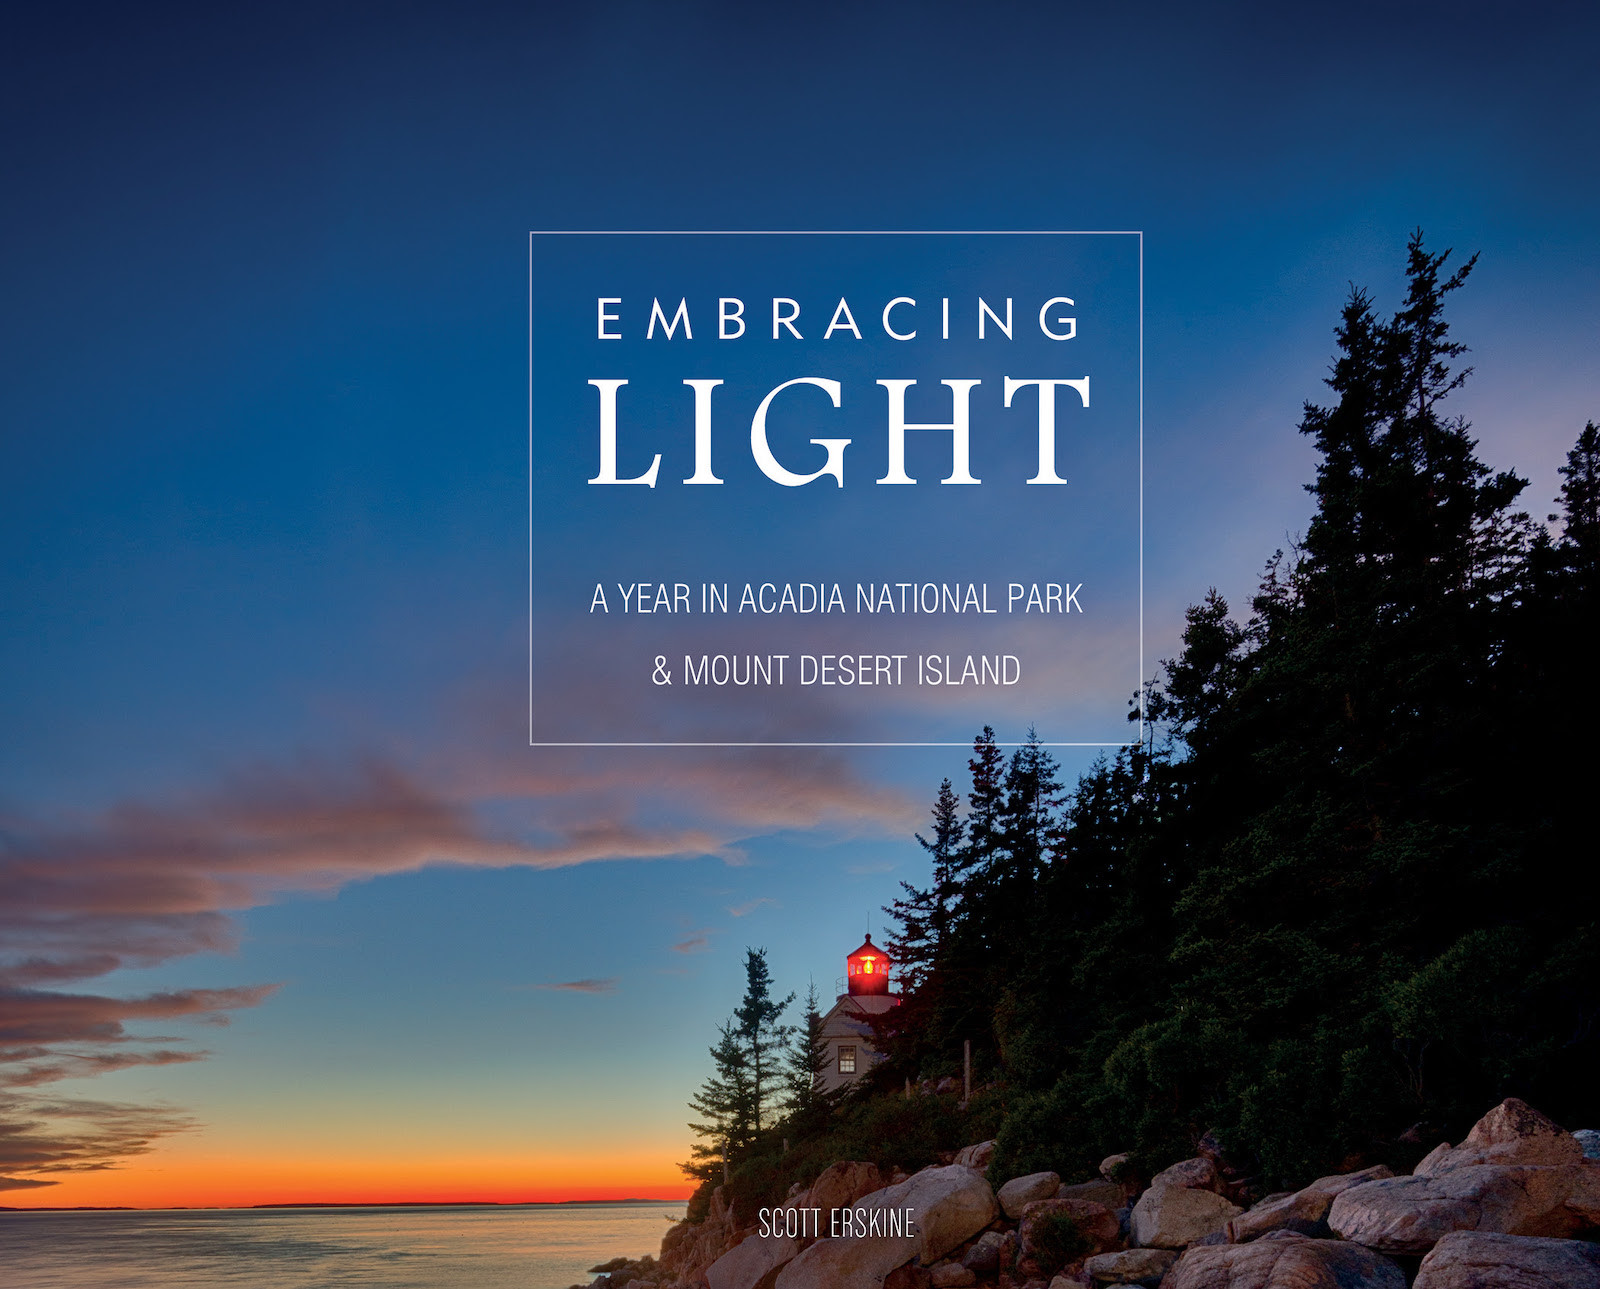 Embracing Light: A Year in Acadia National Park